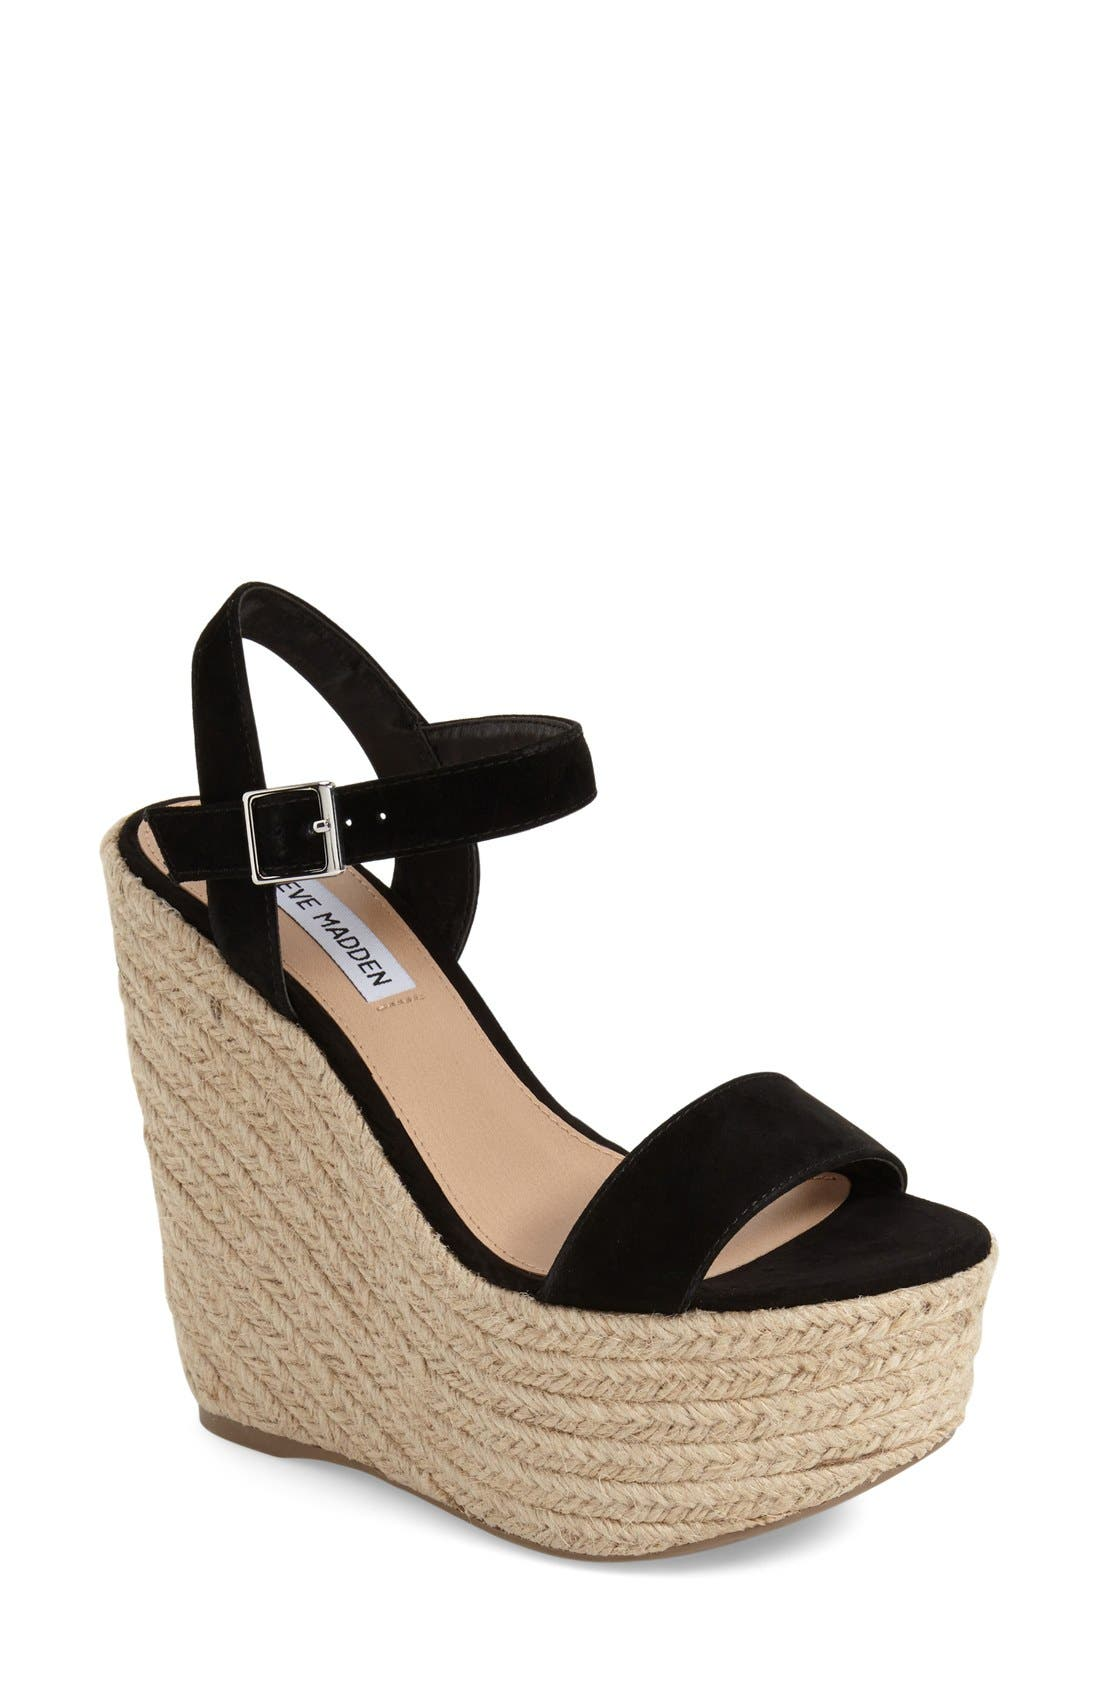 Alternate Image 1 Selected - Steve Madden 'Alyssa' Espadrille Wedge Sandal (Women)